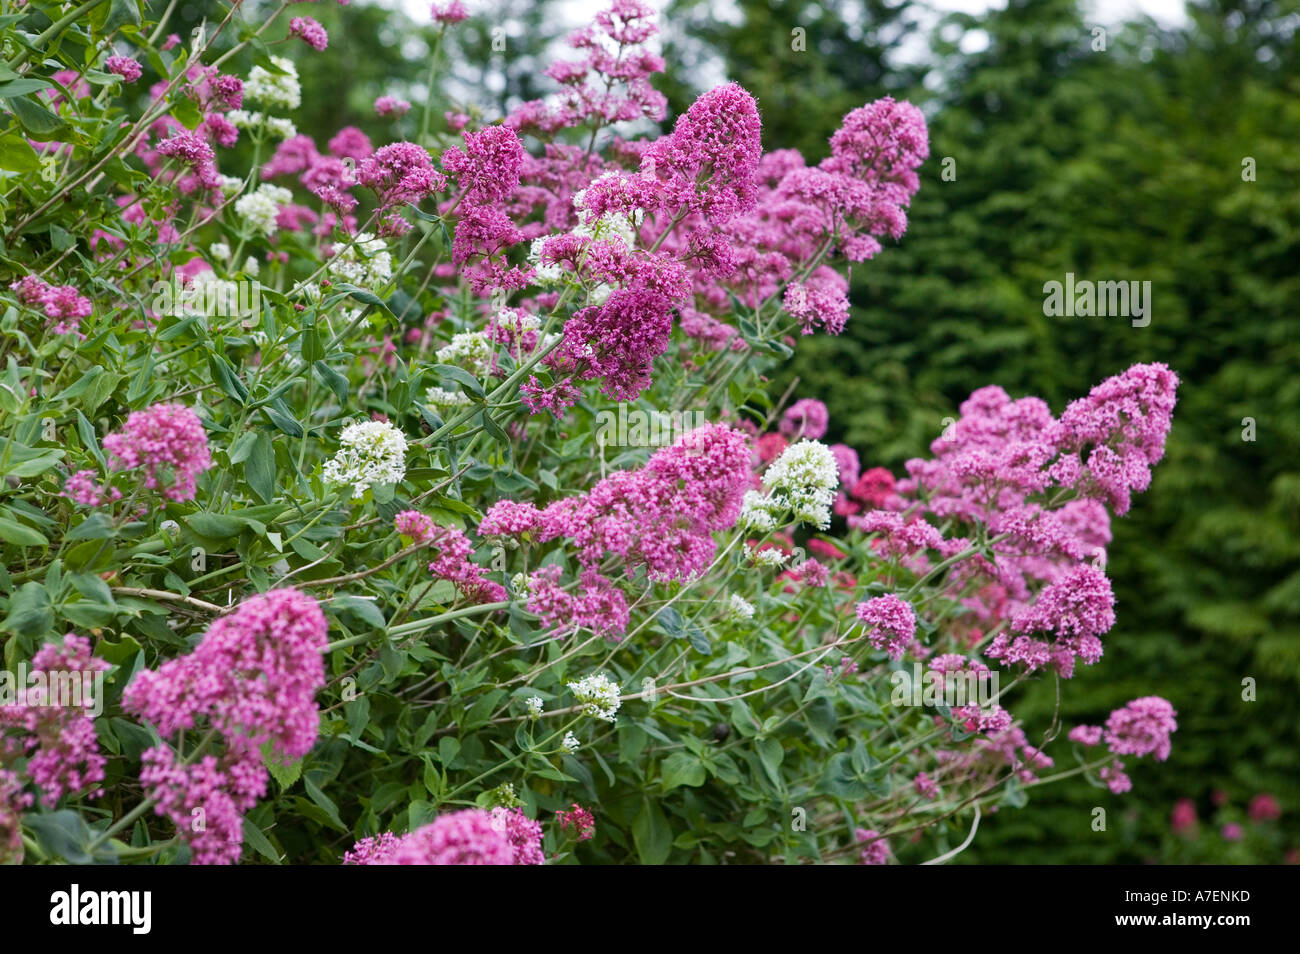 Red valerian with pink flowers centranthus ruber and white flowers red valerian with pink flowers centranthus ruber and white flowers centranthus ruber albus in cottage garden wales uk mightylinksfo